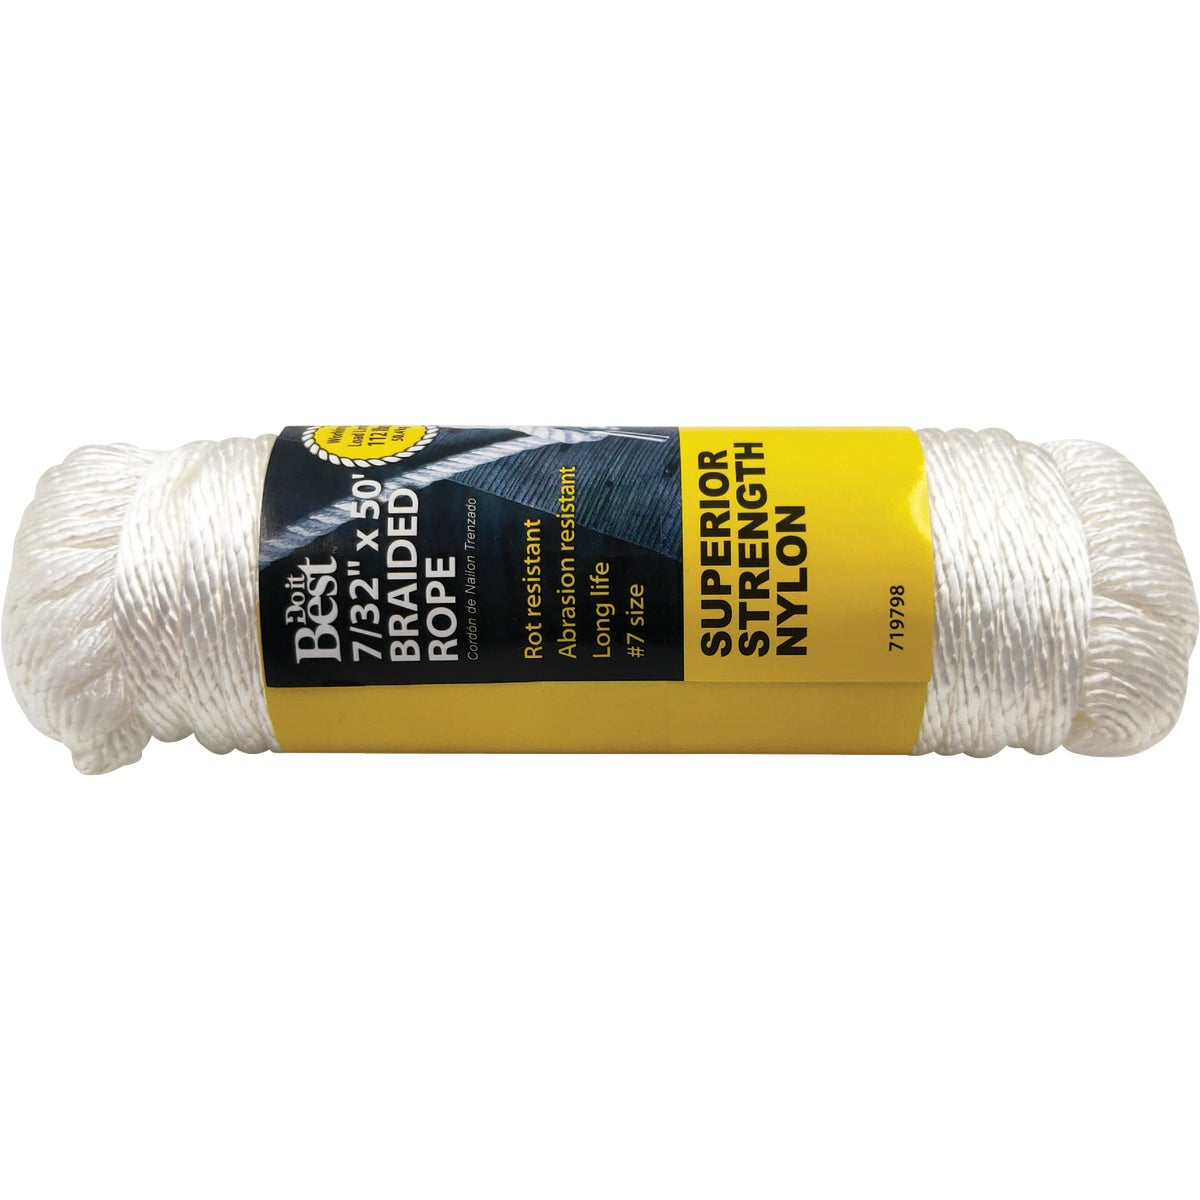 "7/32""X50' NYL BRAID ROPE - 719798 by Do it Best"